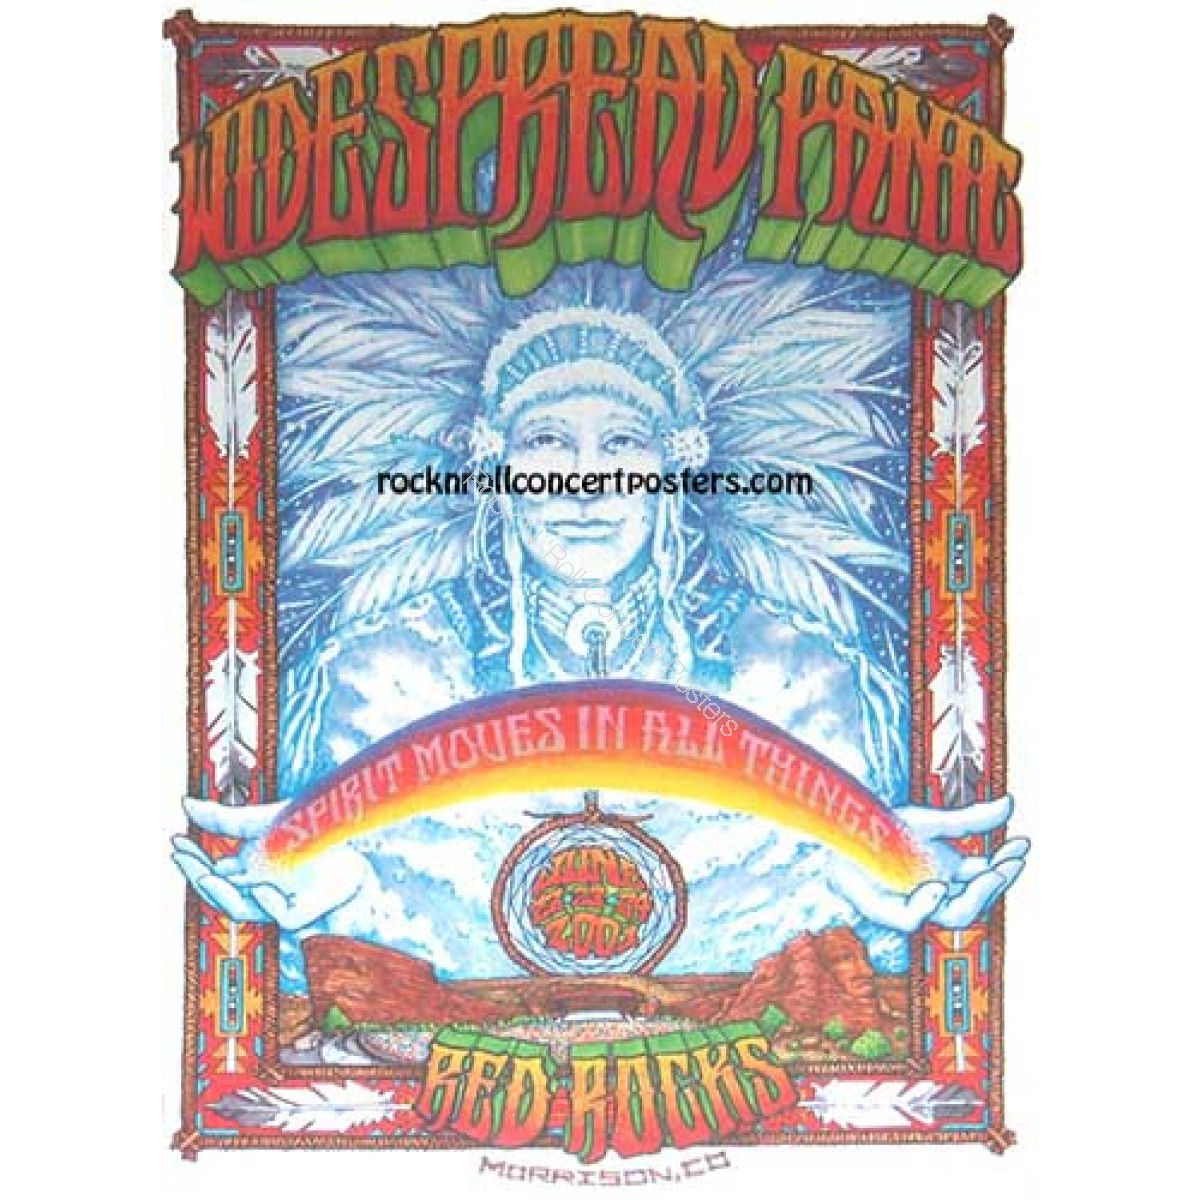 Widespread Panic @ Red Rocks June 22-24th 2001 Official concert poster 1st edition